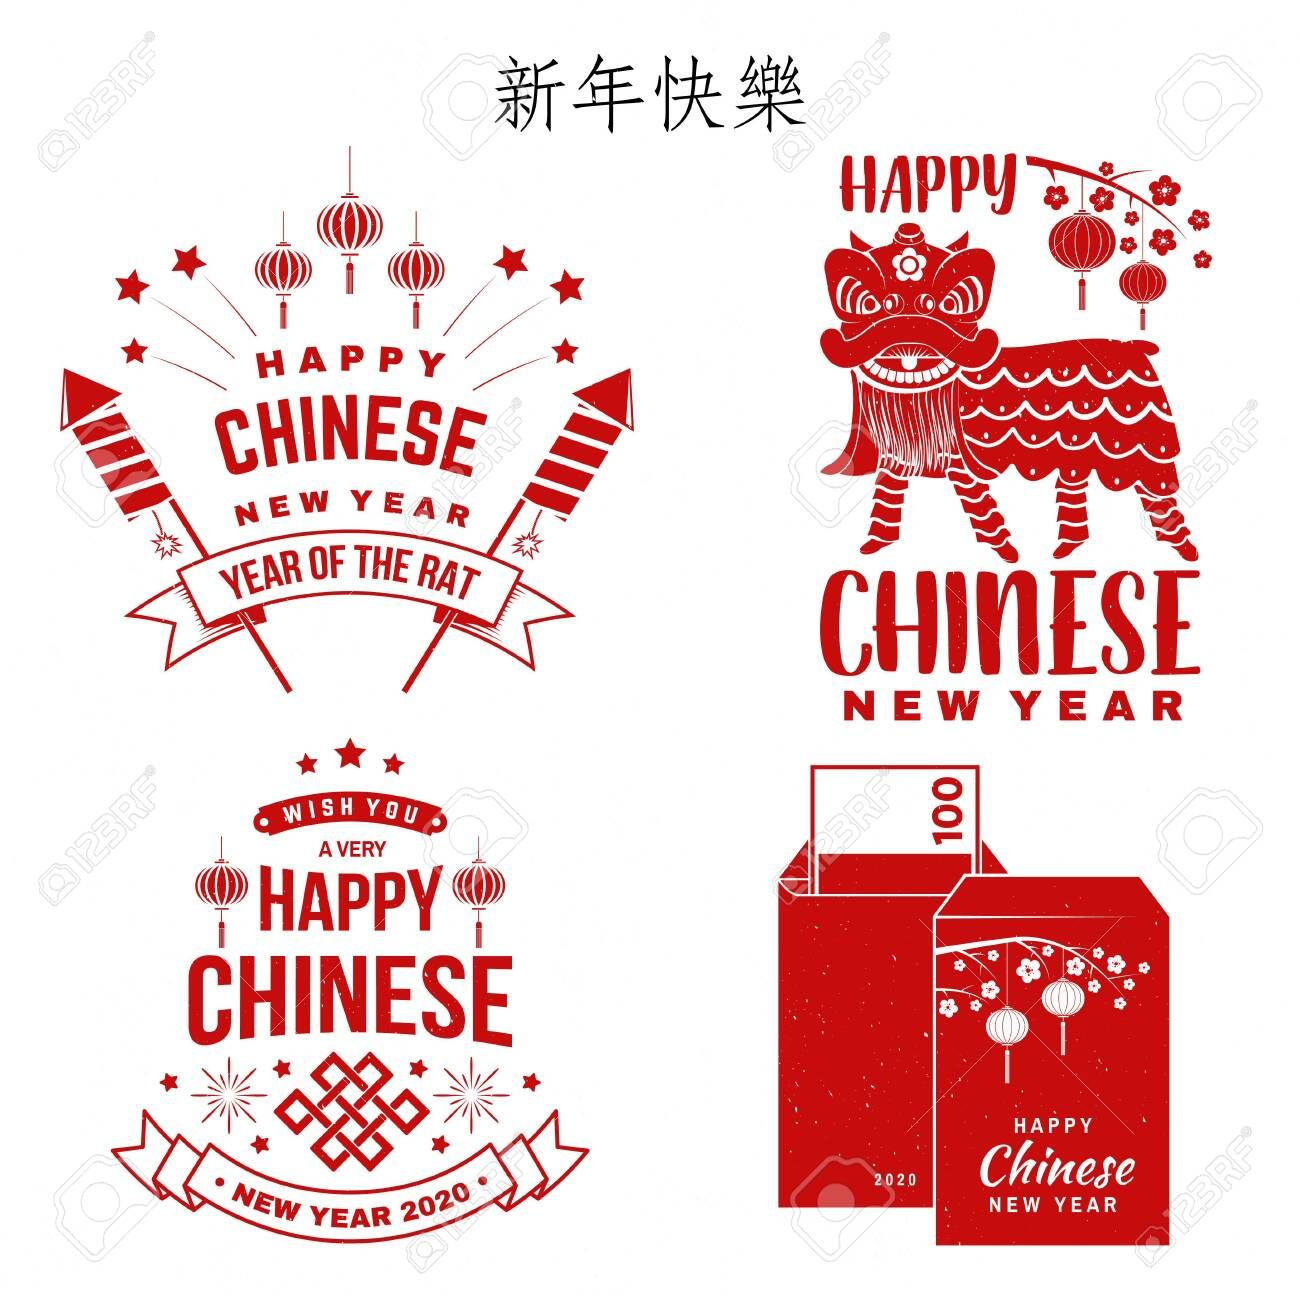 Happy Chinese New Year Design Chinese New Year Felicitation Classic Postcard Chinese Sign Yea Happy Chinese New Year Chinese New Year Design New Year Designs